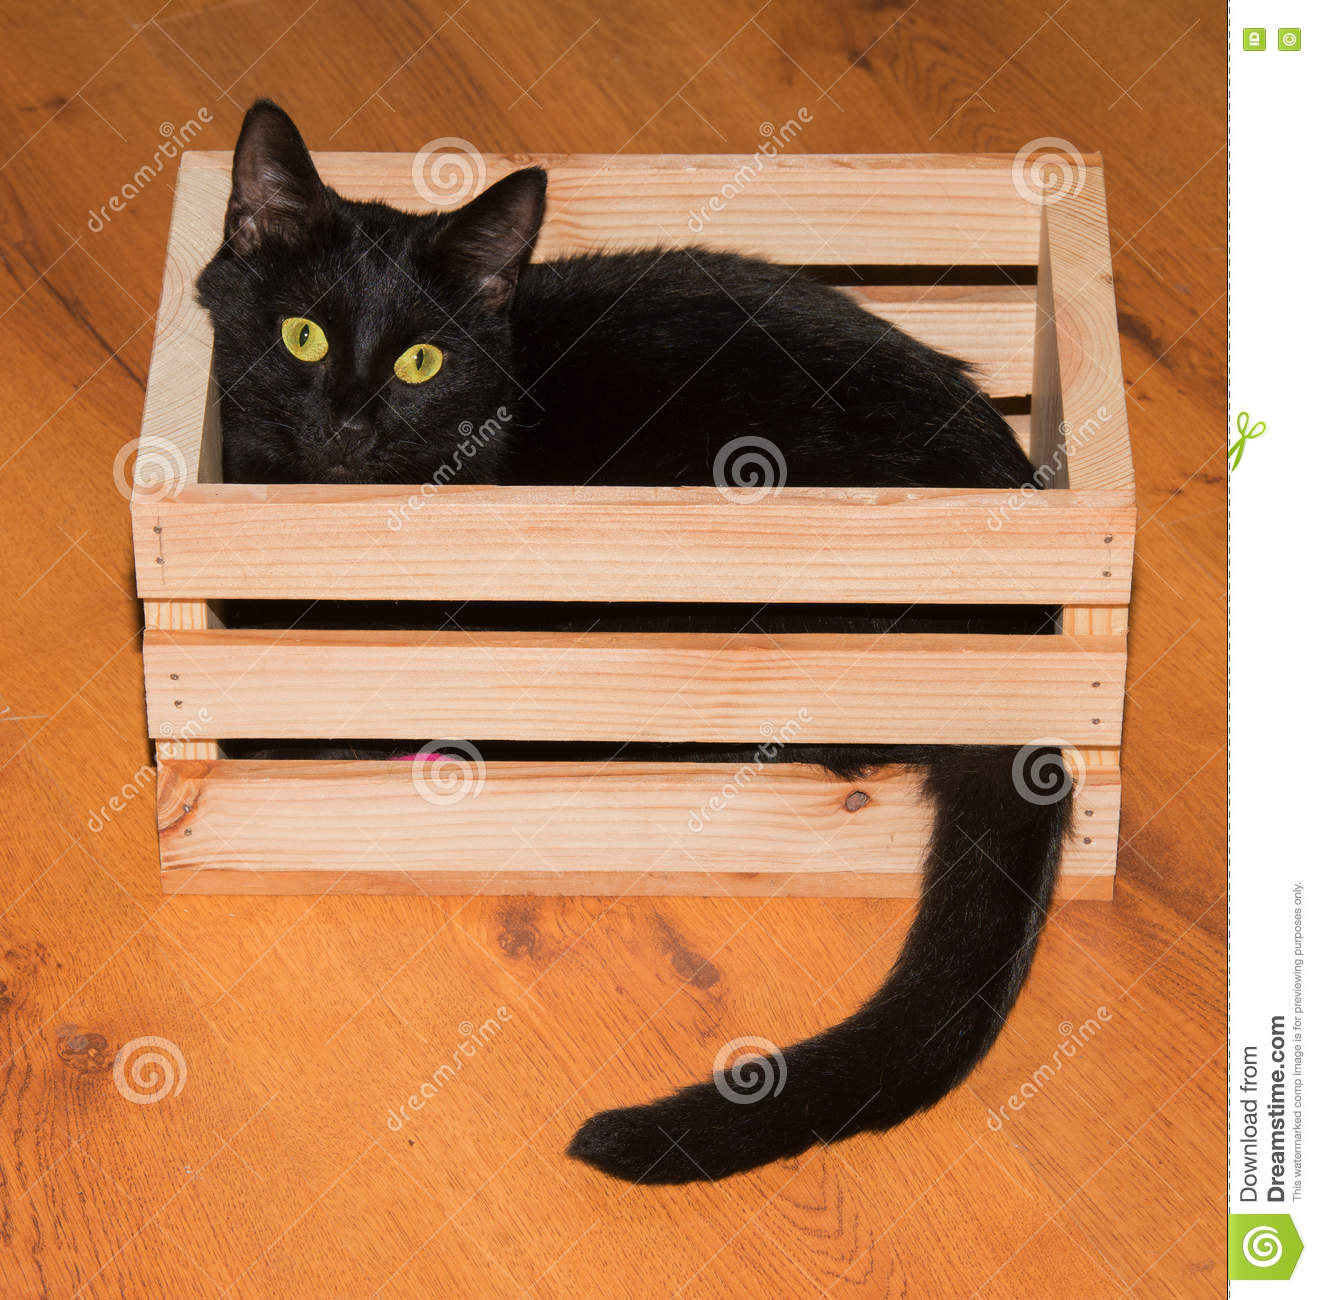 black-cat-playing-hiding-wooden-crate-lo